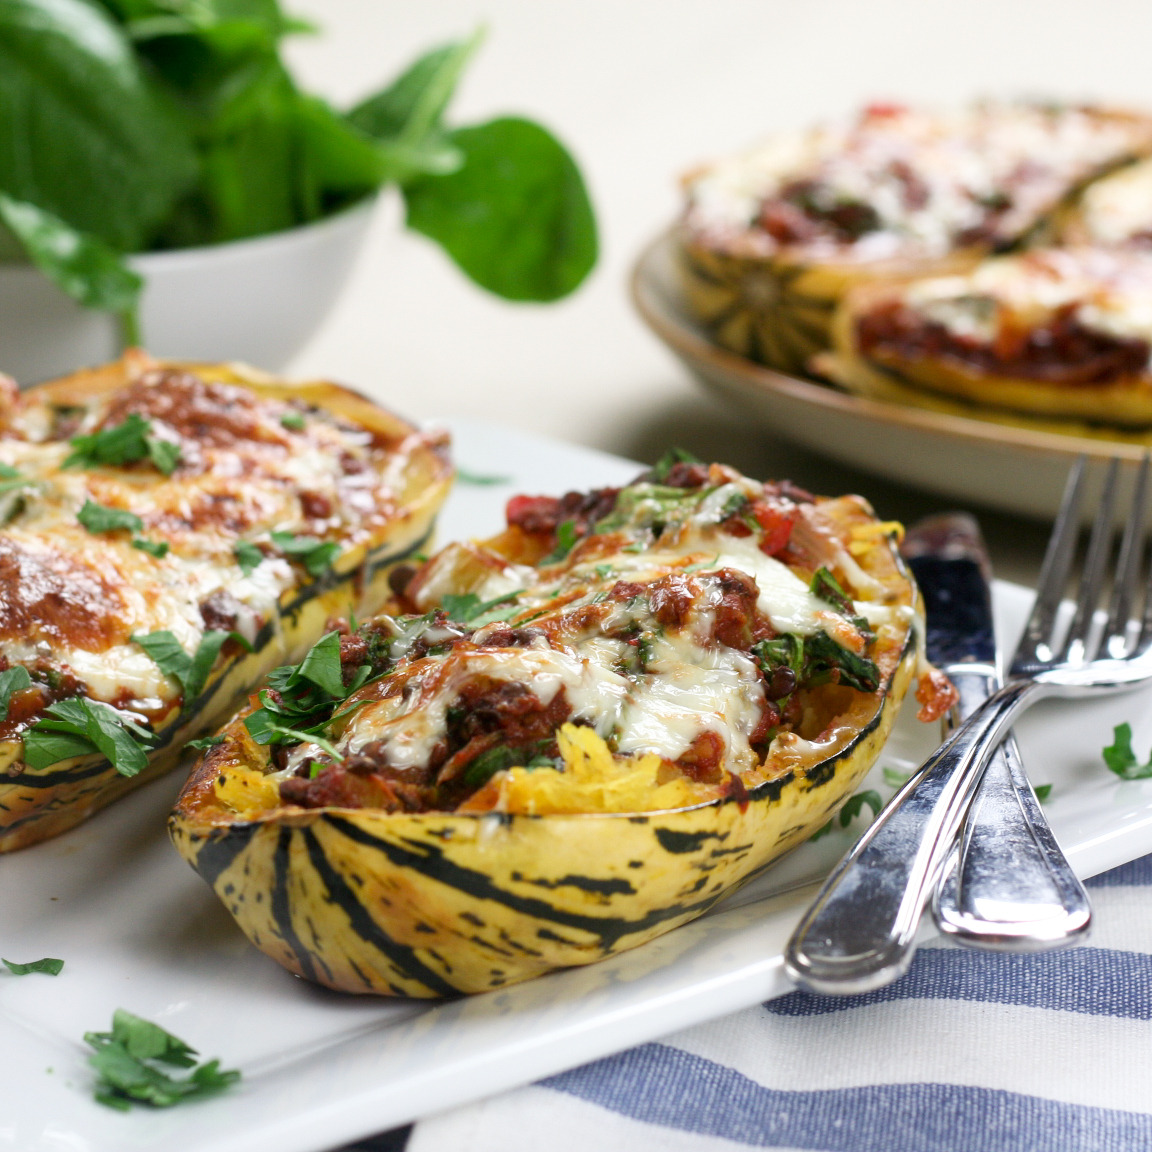 "thehealthyfoodie:  Stripetti Squash ""Au Gratin""  Oven baked Stripetti squash with tomato, lentil and spinach sauce, topped with melted mozzarella. Deliciously comforting!"